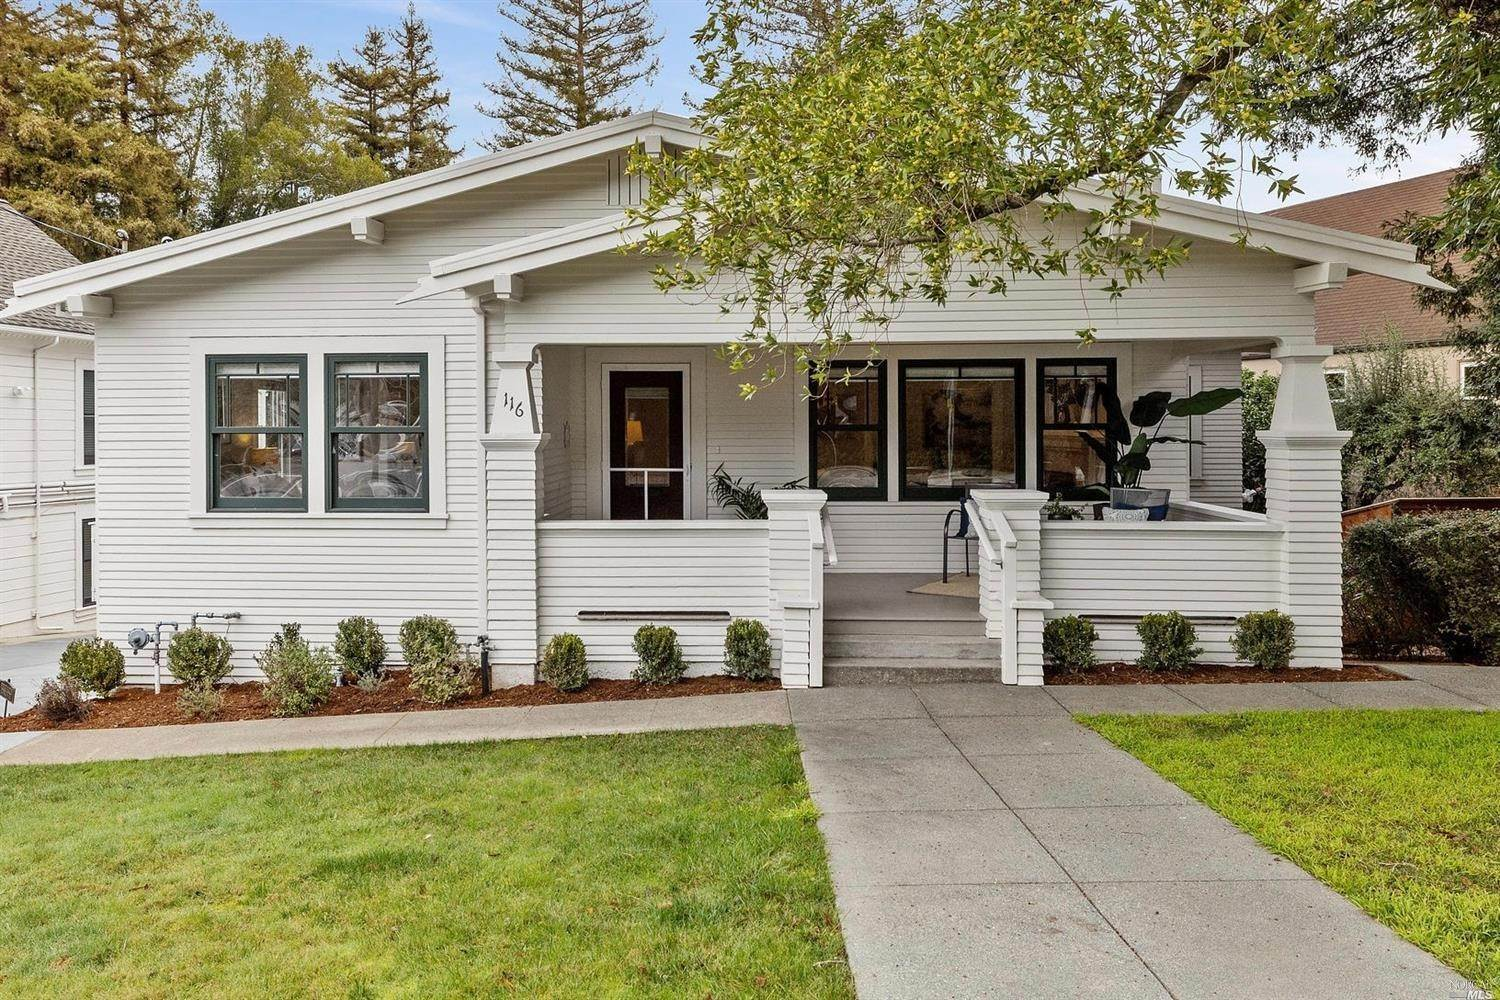 Single Family Homes for Sale at 116 Magnolia Avenue , Larkspur Larkspur, California 94939 United States